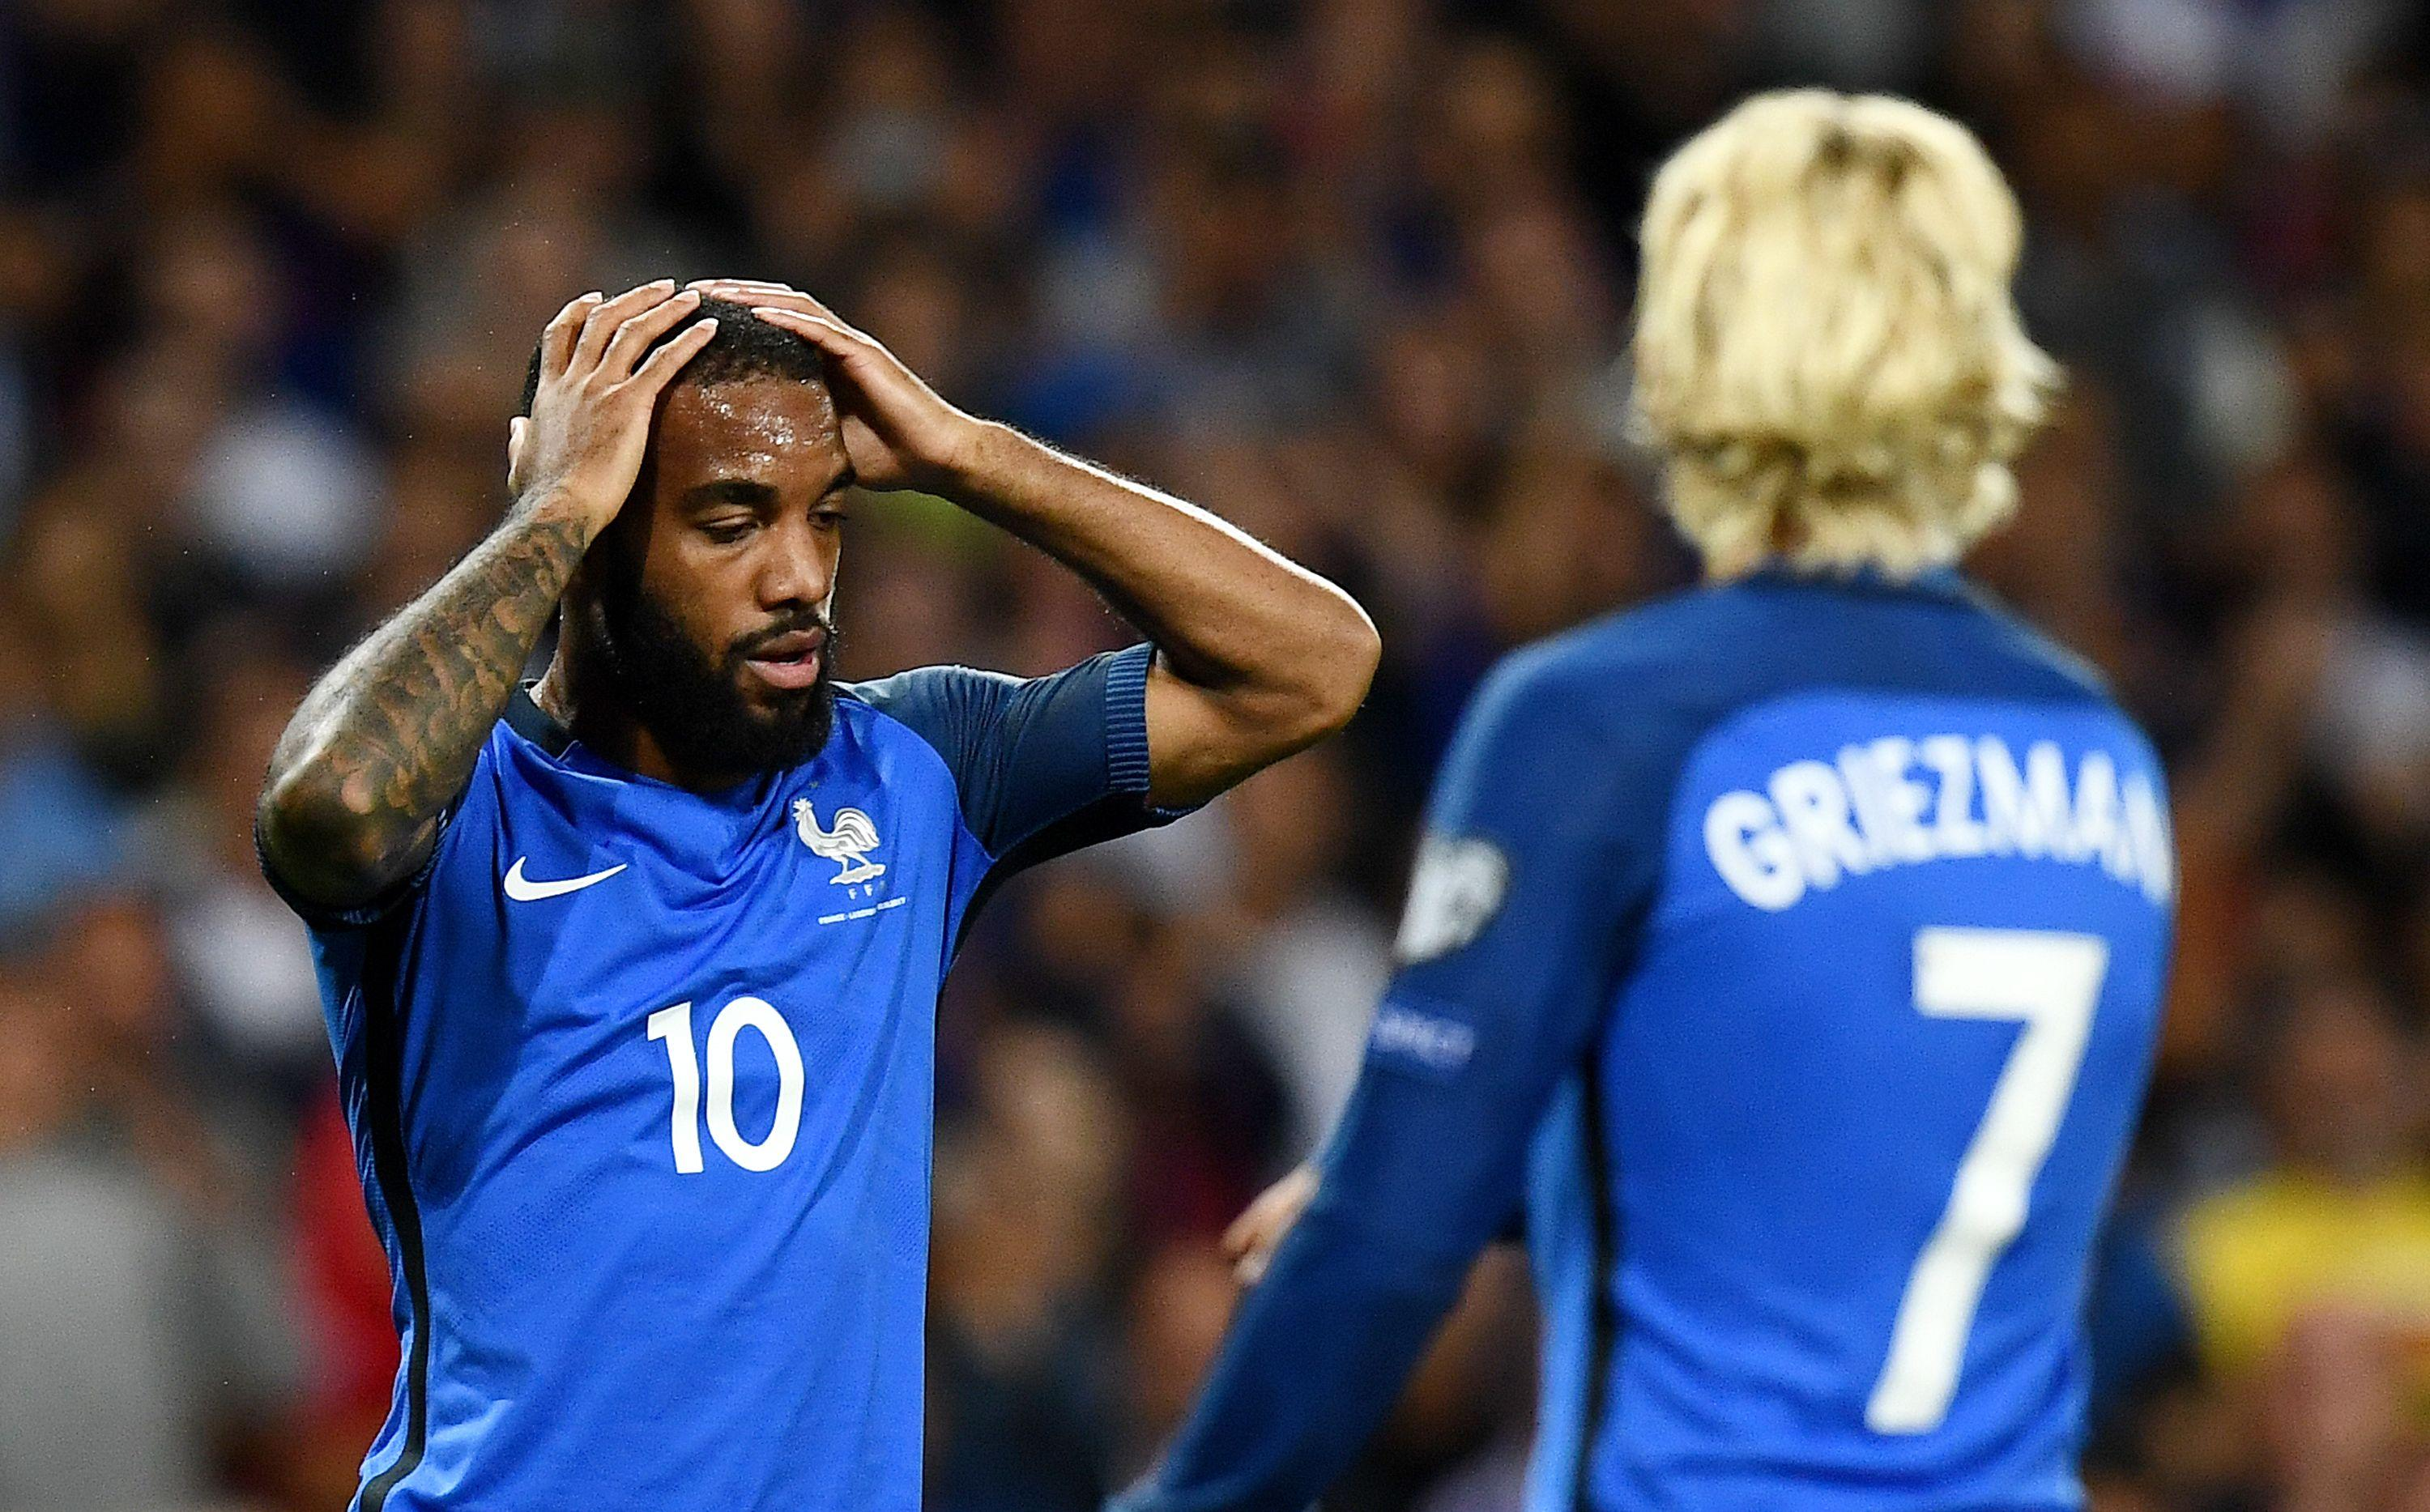 Lacazette's World Cup ambitions hang in the balance